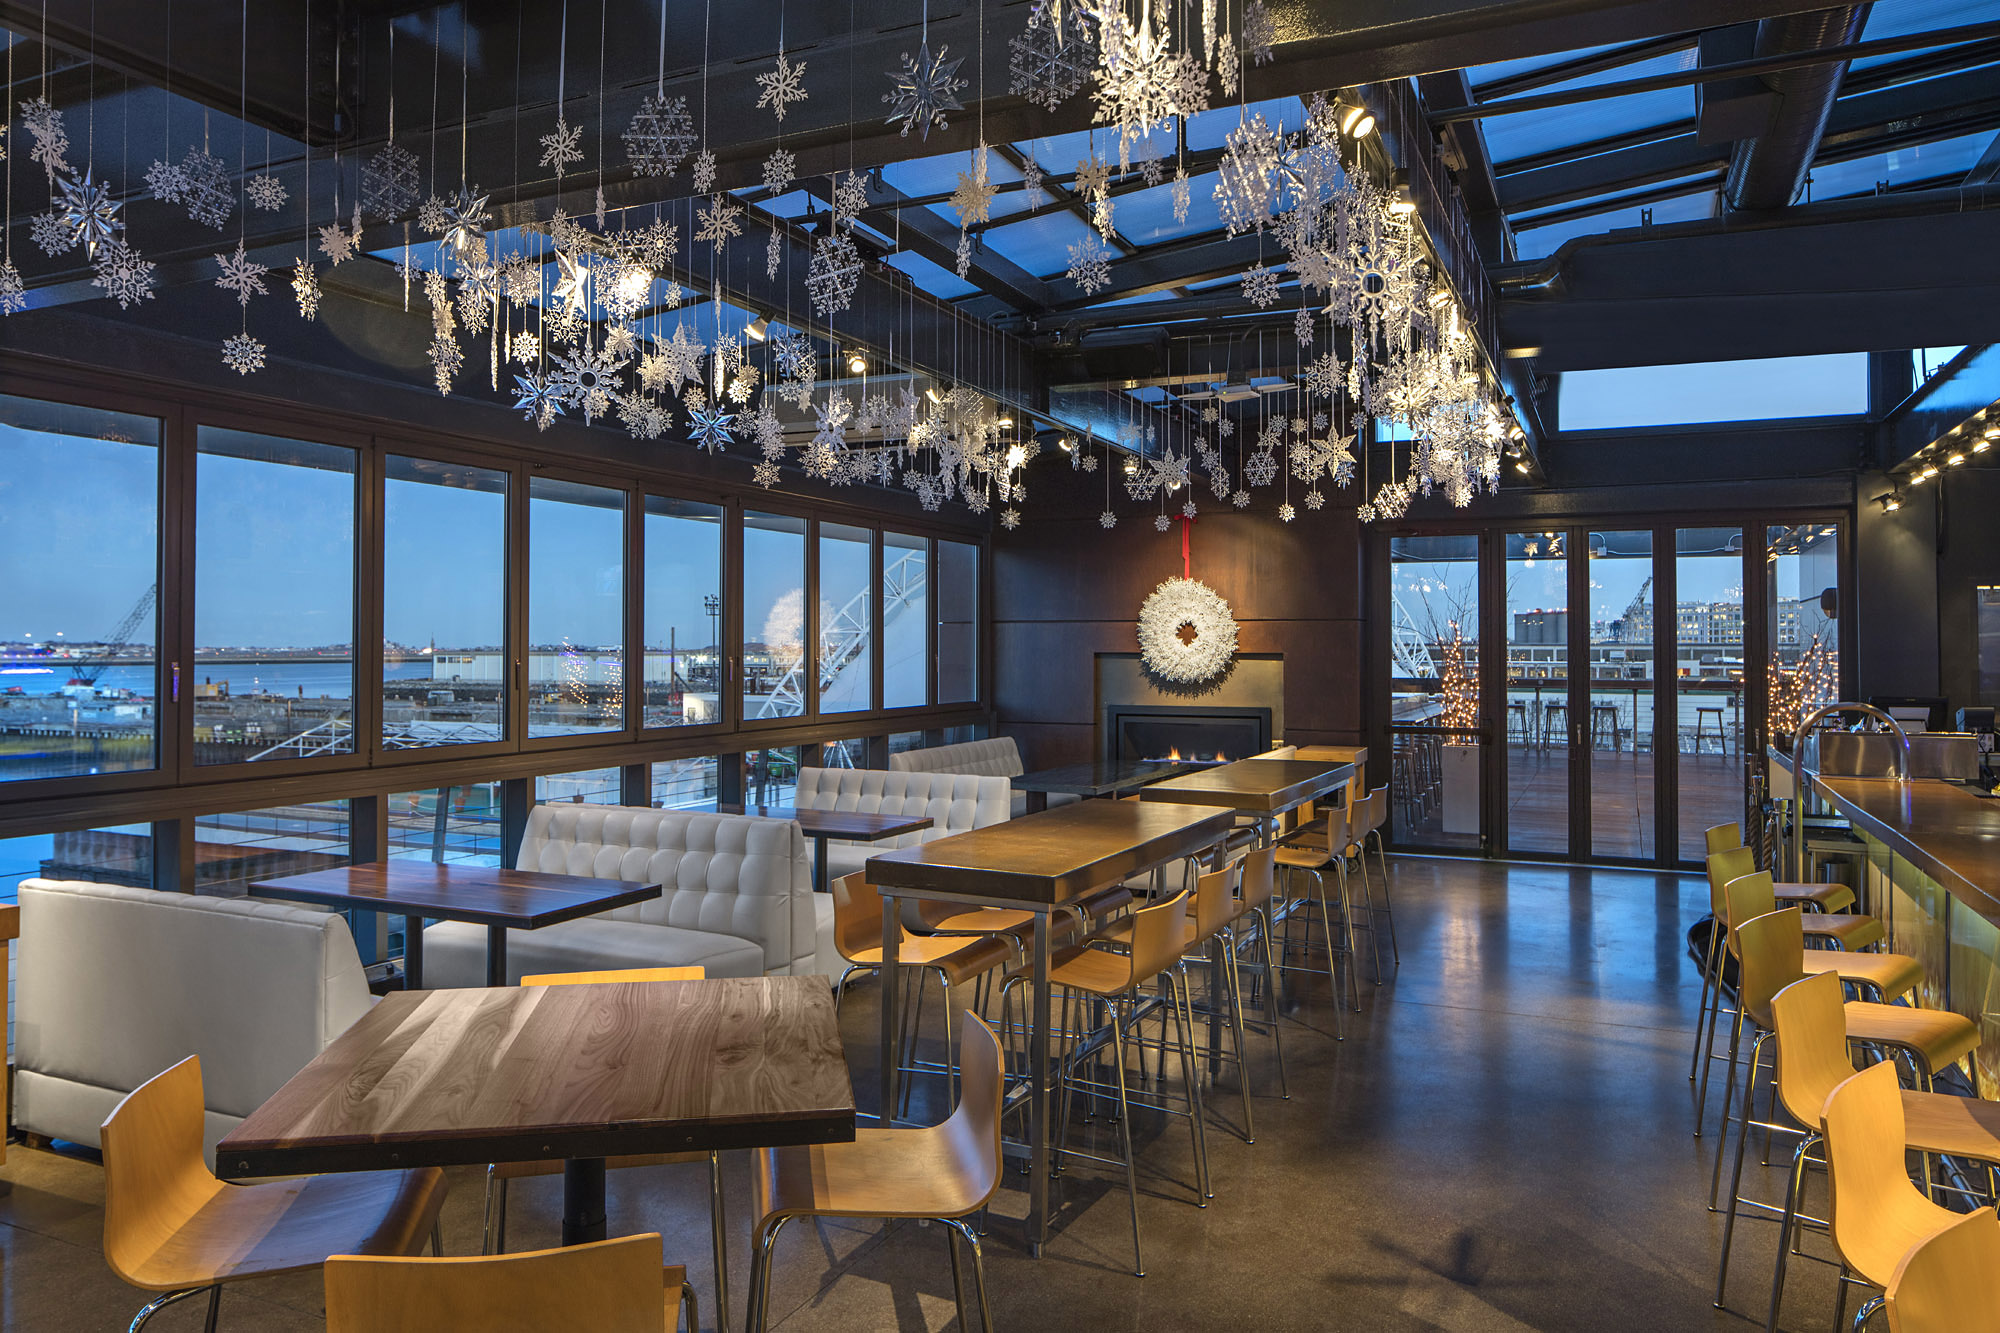 Ring In 2018 With Rooftop Reveling At Legal Harborside 12